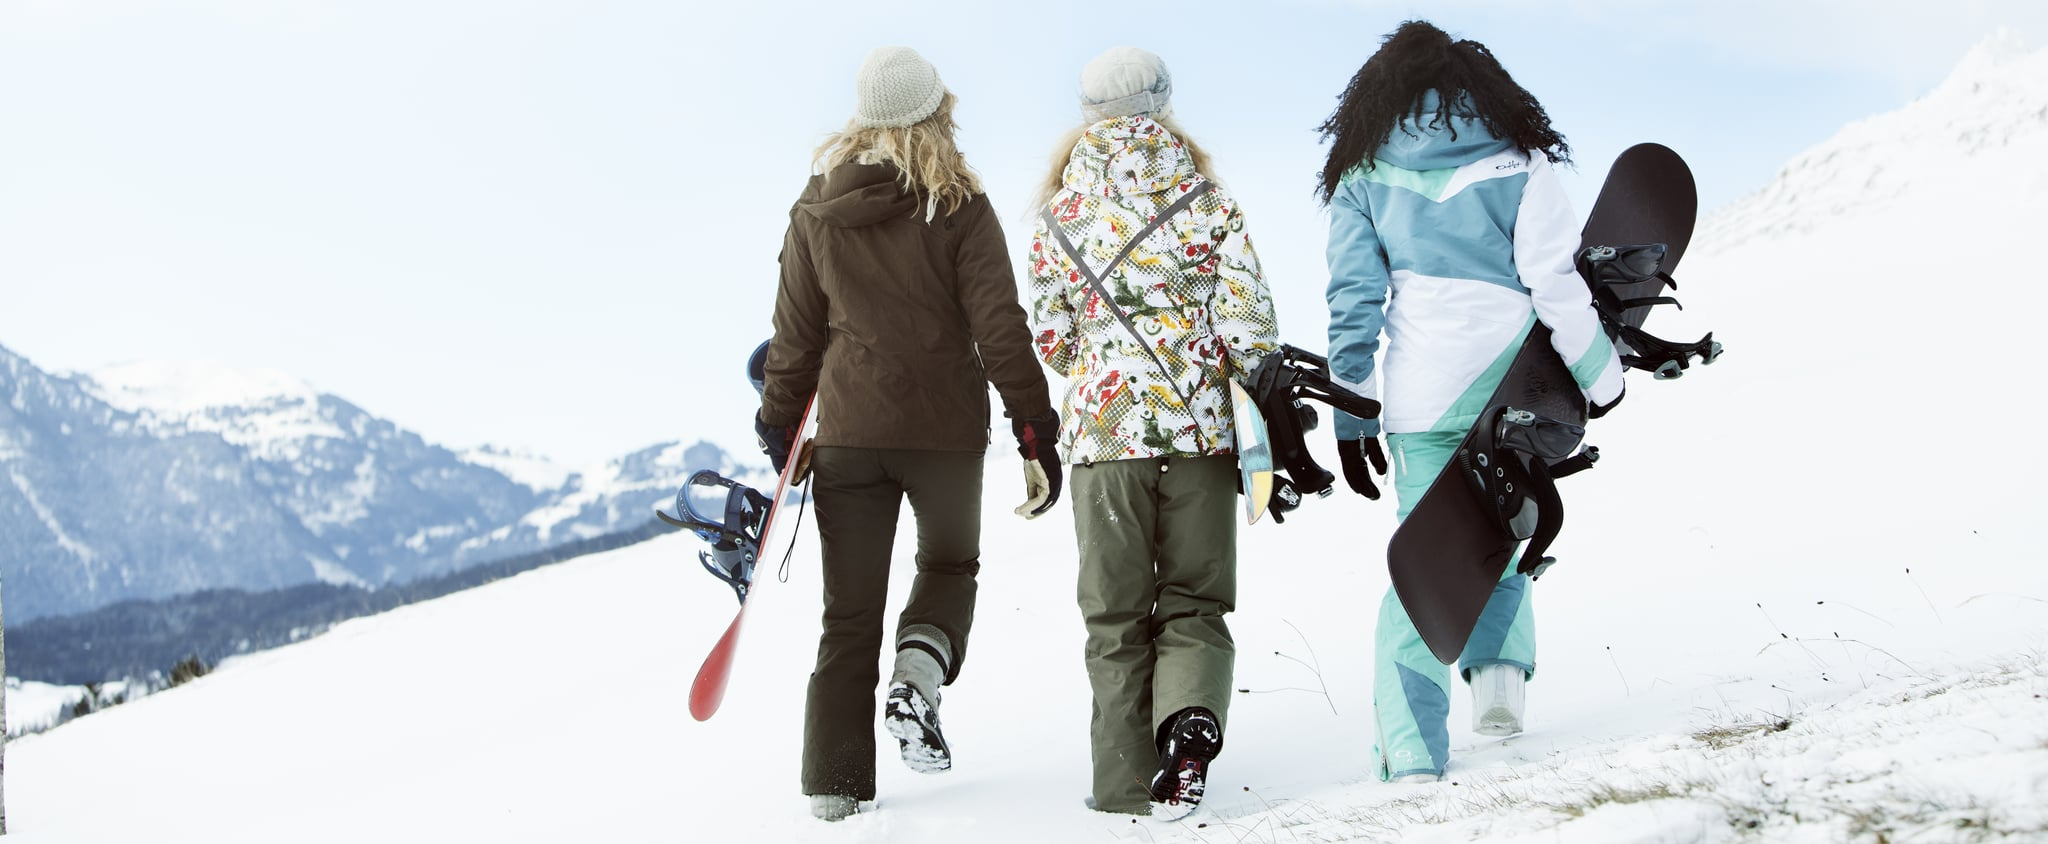 Common Ski and Snowboarding Injuries, and How to Avoid Them